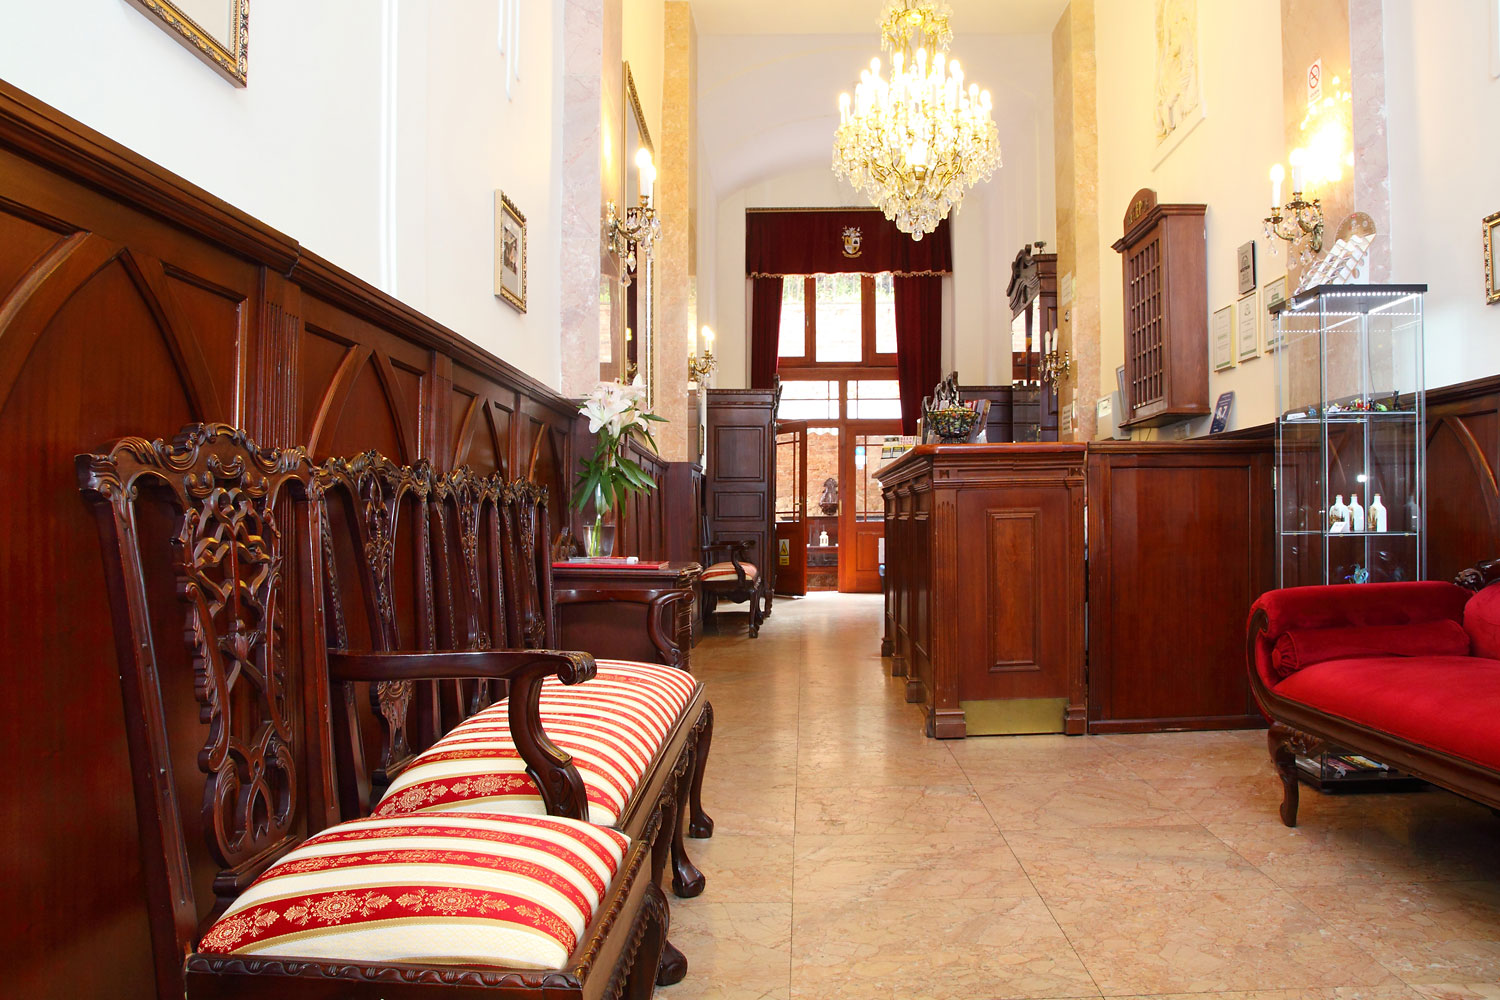 Hotel King Charles 4 (Prague, Czech Republic): photos and description, service, tourist reviews 36